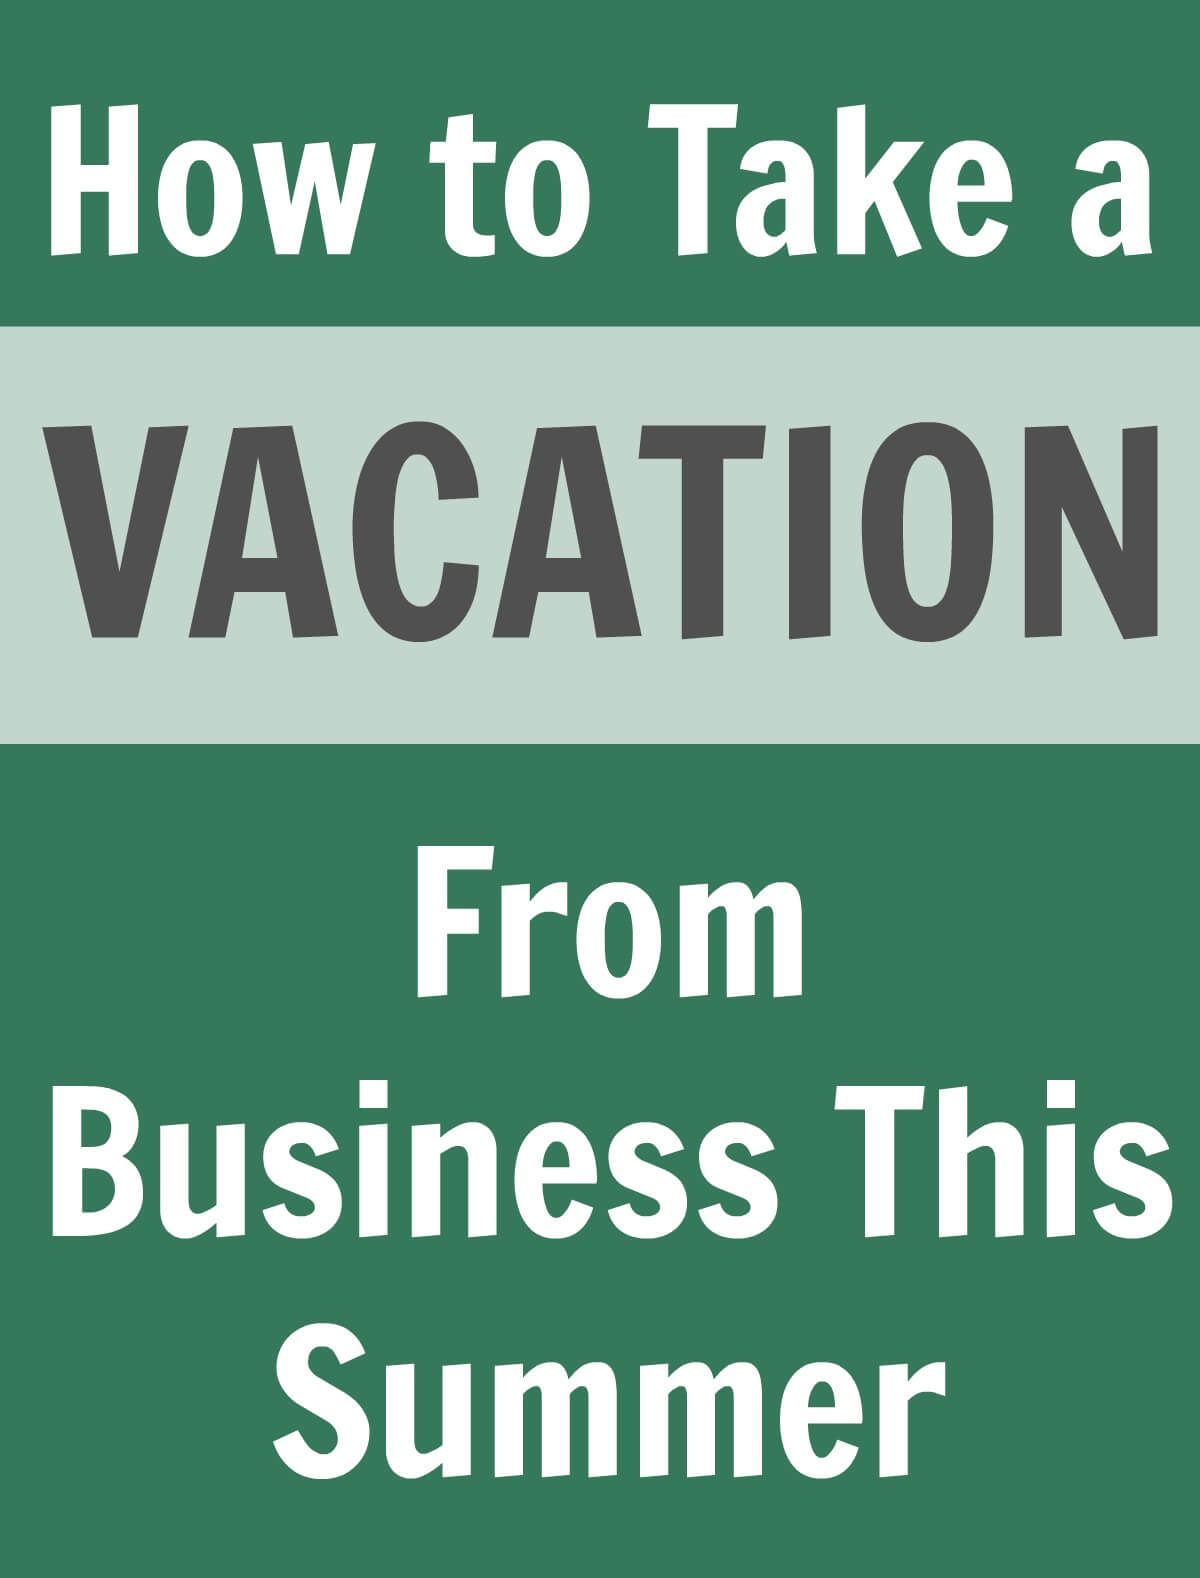 Thinking Outside The Sandbox: Business How-to-Take-a-Vacation-From-Business-This-Summer How to Take a Vacation from Business this Summer All Posts Blogging Small Business  vacation summer schedule planning how to business plan business